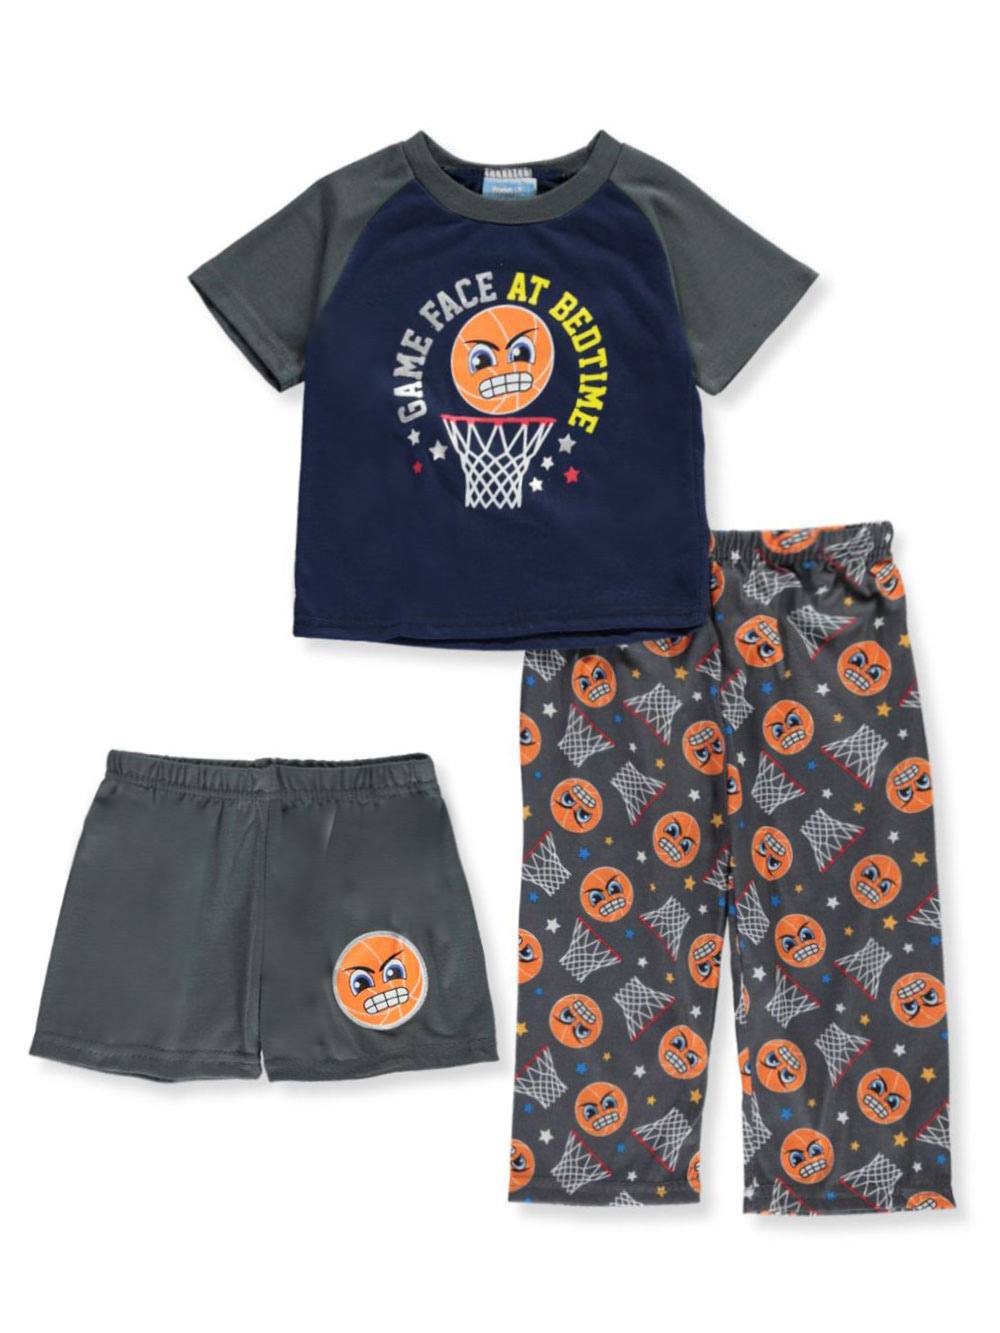 Boys Navy Pajamas